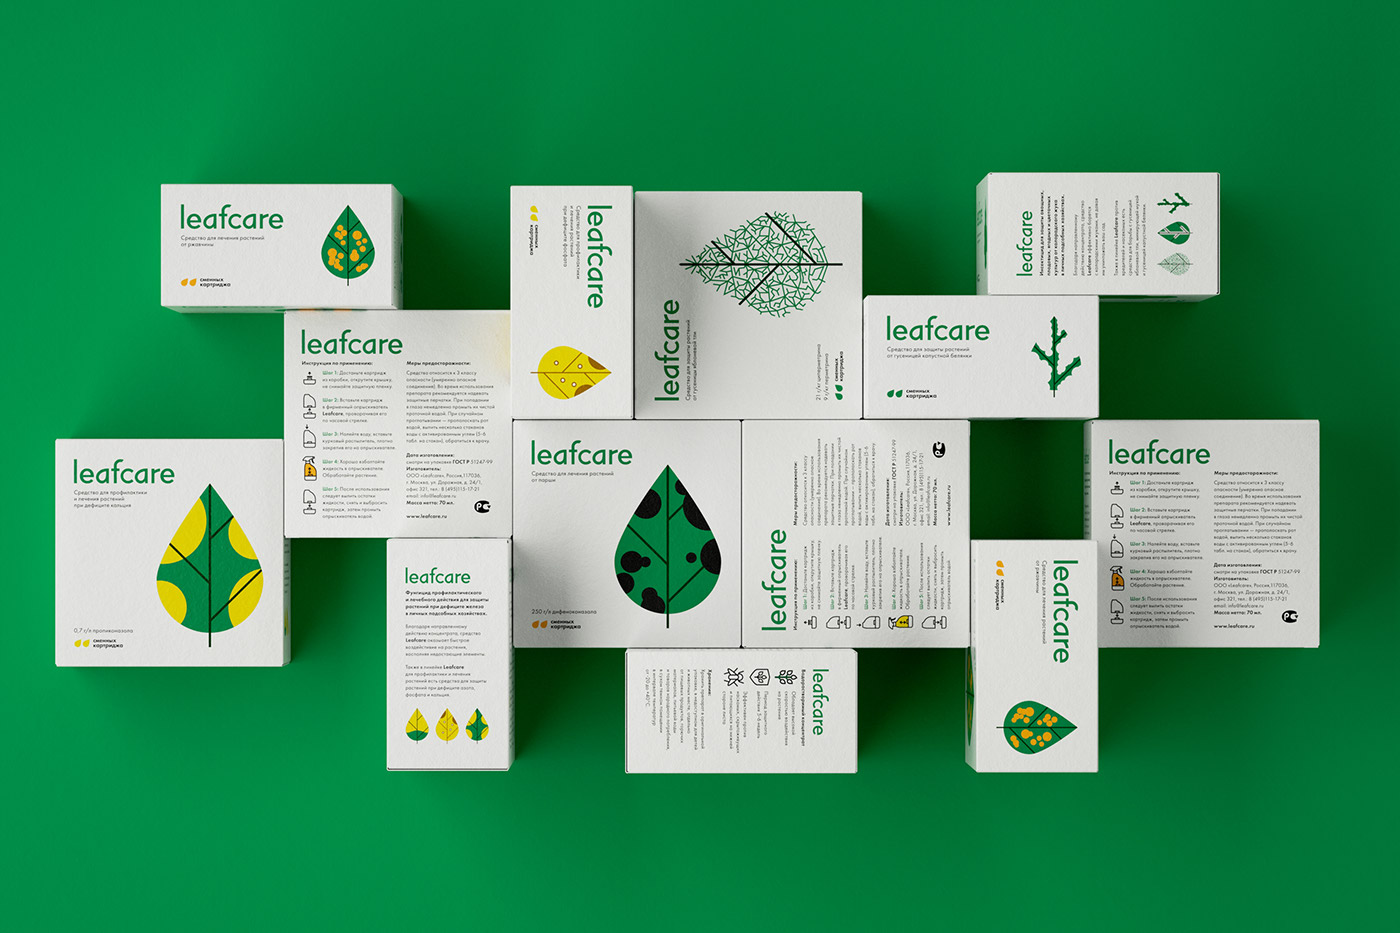 Packaging leaf Insects bugs branding  killer innovation insect garden concept